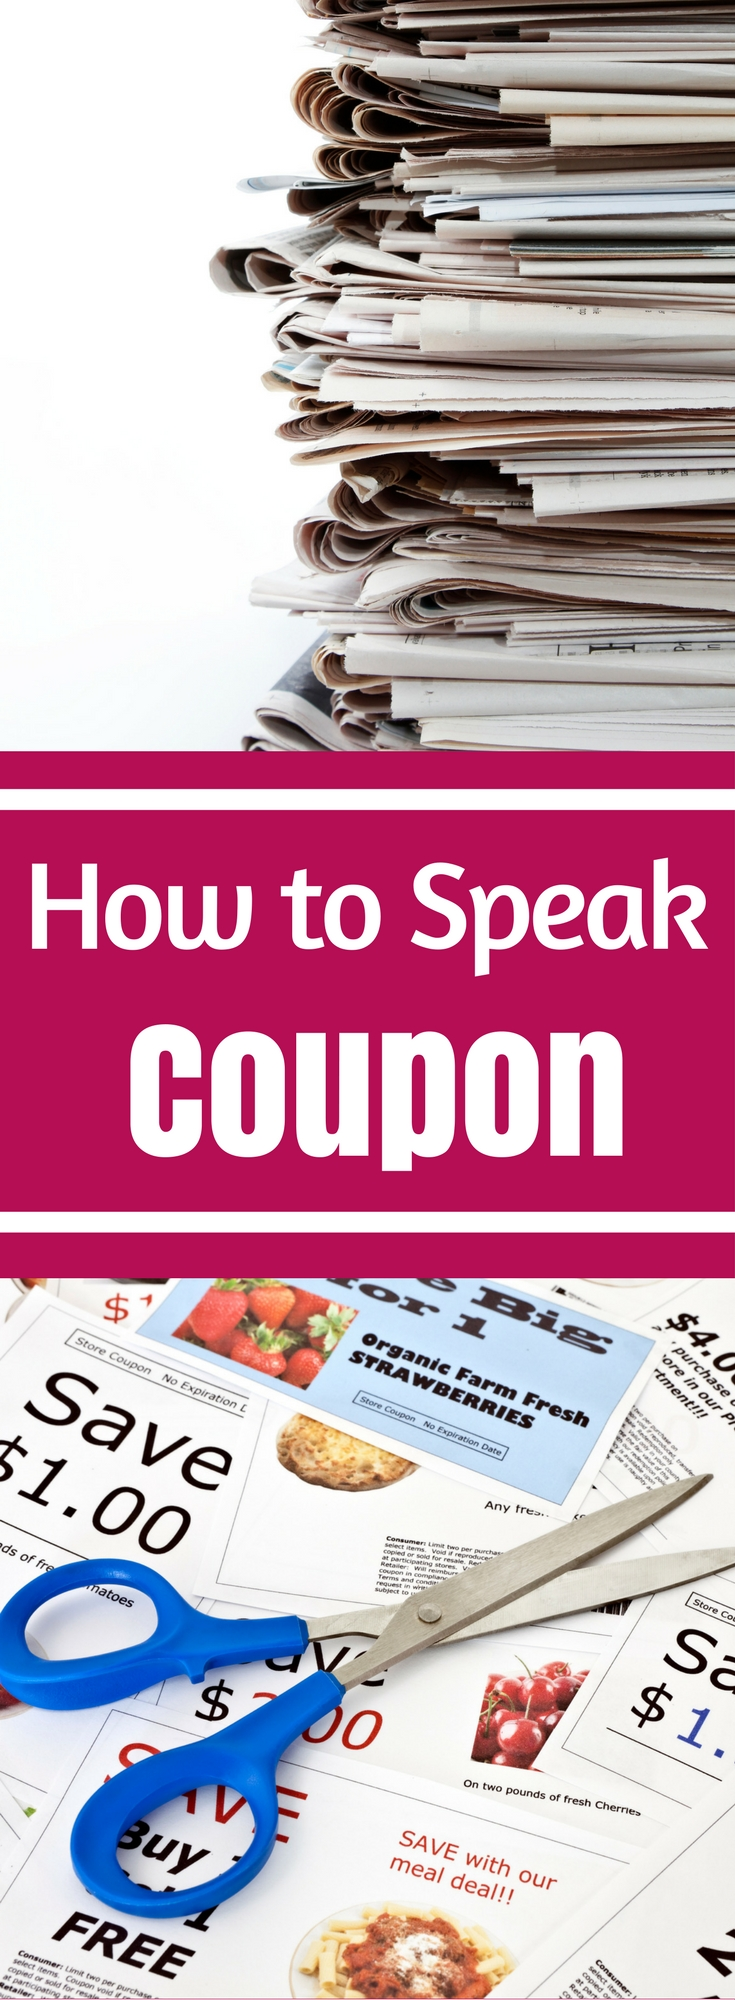 Store Coupons Archives Cuckoo For Coupon Deals - Download free invoice template online fabric store coupon